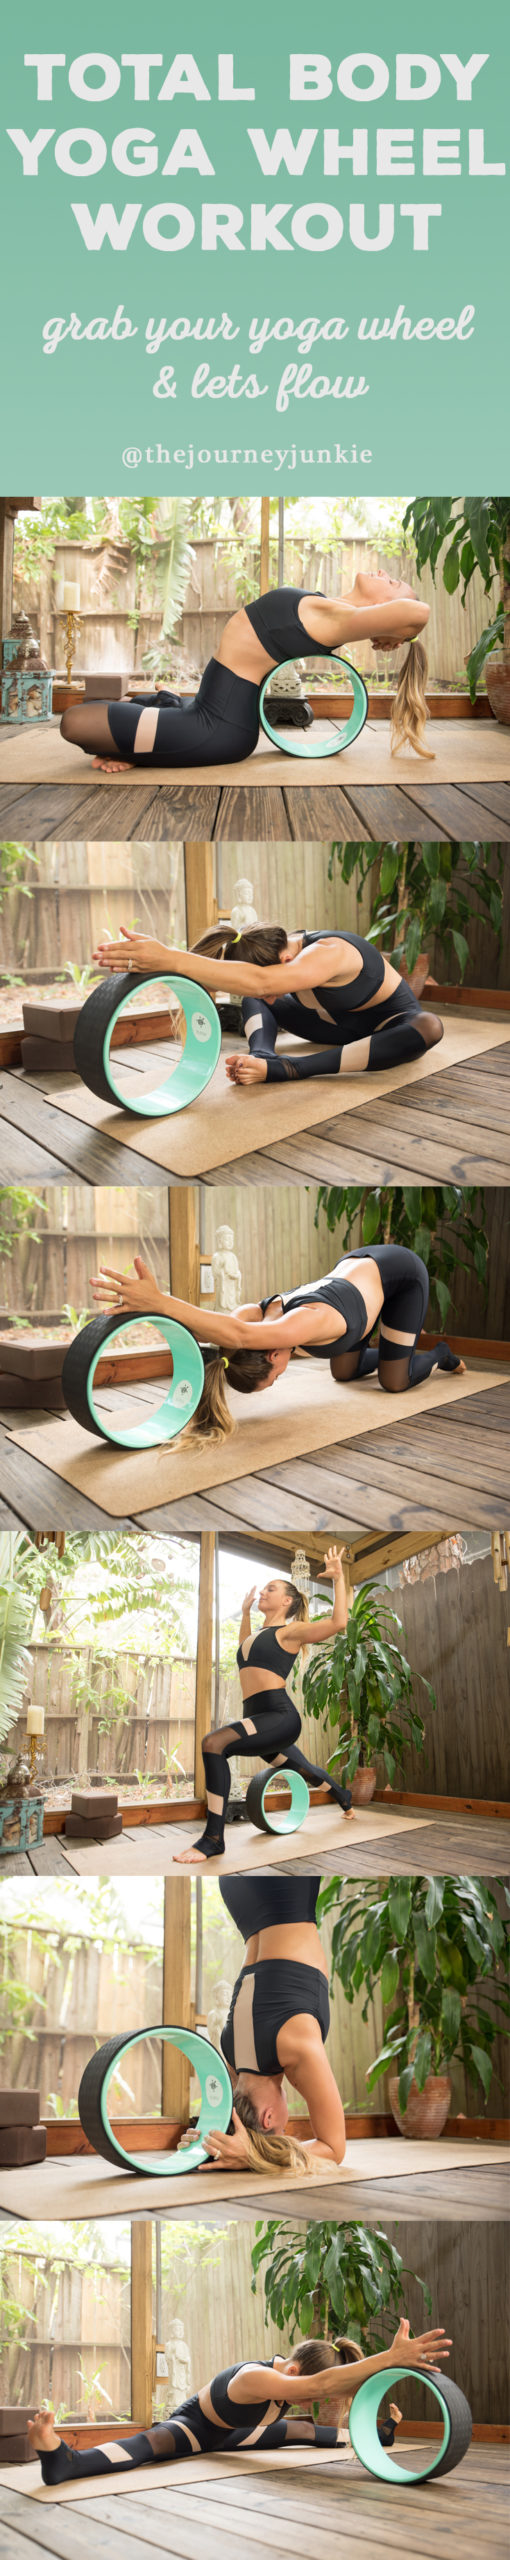 Yoga Wheel Flow: Total Body Workout - Pin now, treat yourself to a wheel now, and learn how to use your wheel alongside me for a total body workout!